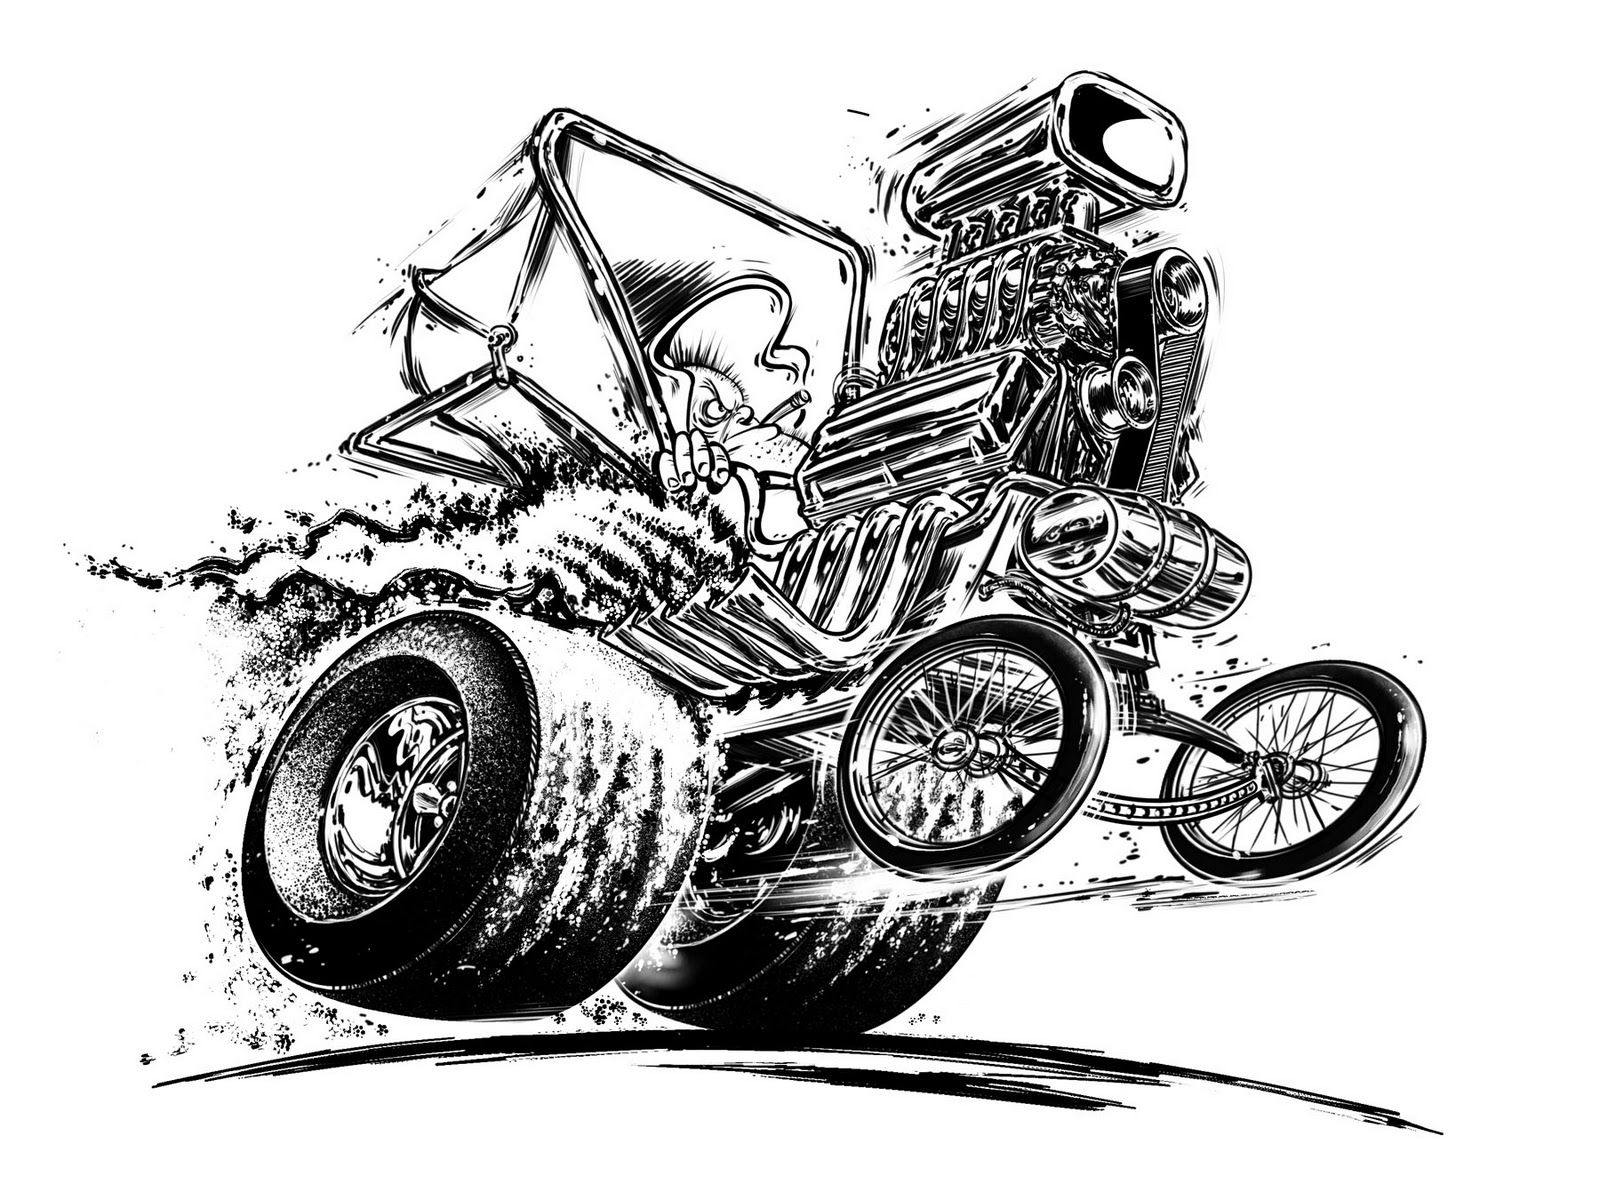 Hot Rod Monster Art Posted By Jeff Norwell At 8 36 Am No